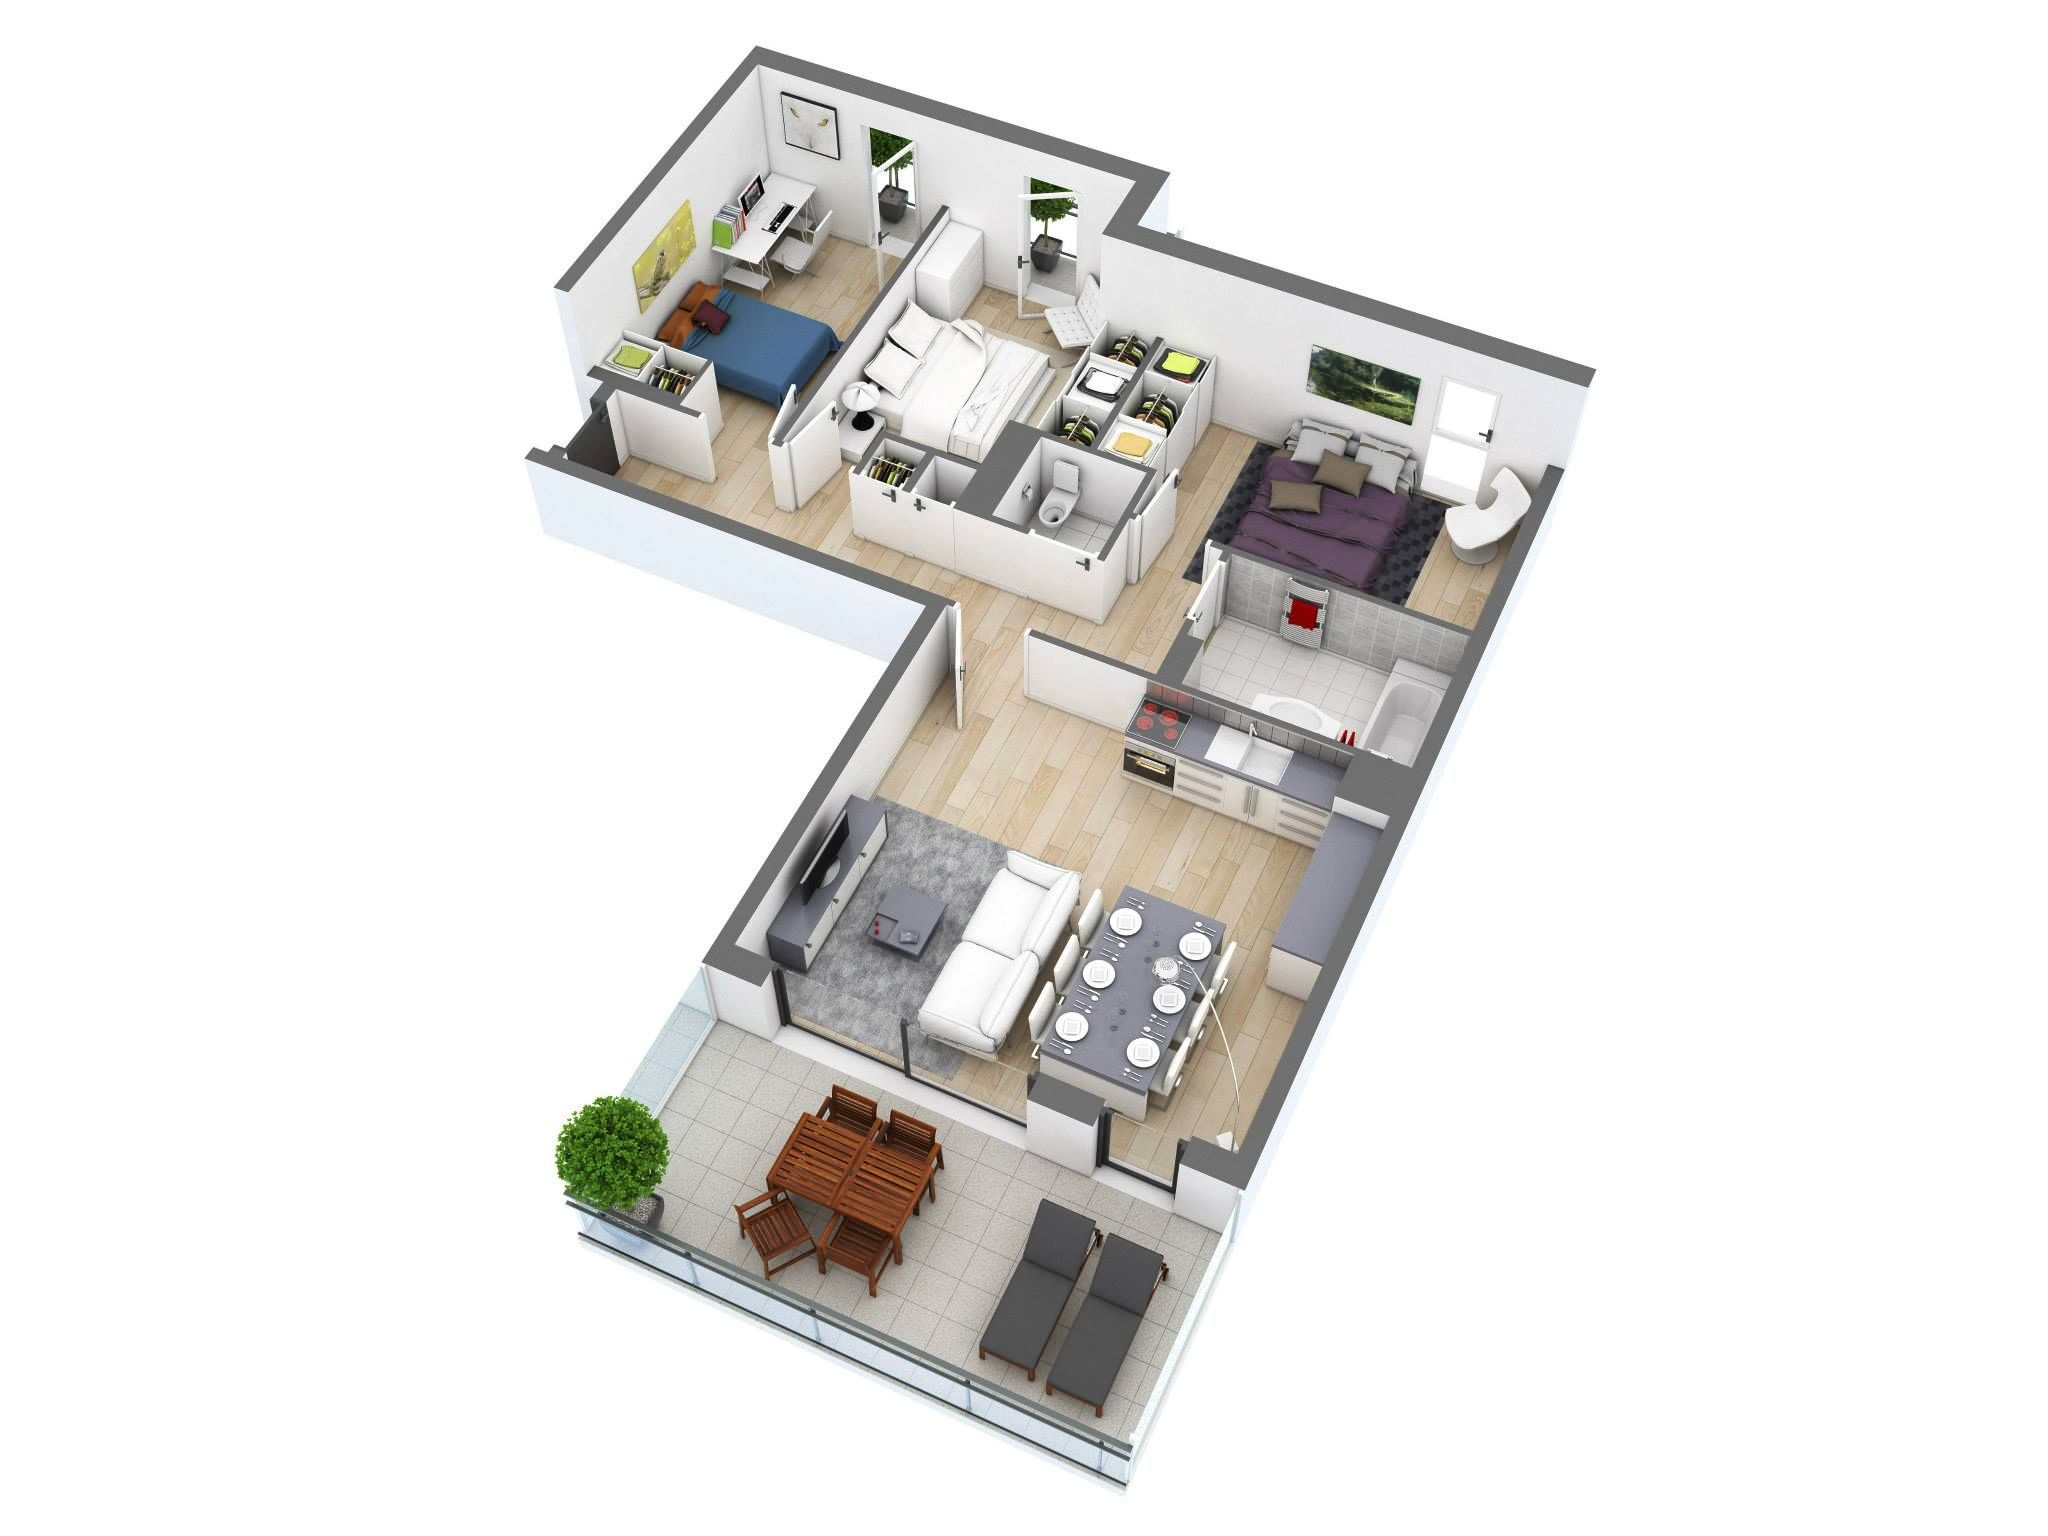 3 bedroom home plans designs. 3 bedroom floor plans  Understanding 3D Floor Plans And Finding The Right Layout For You